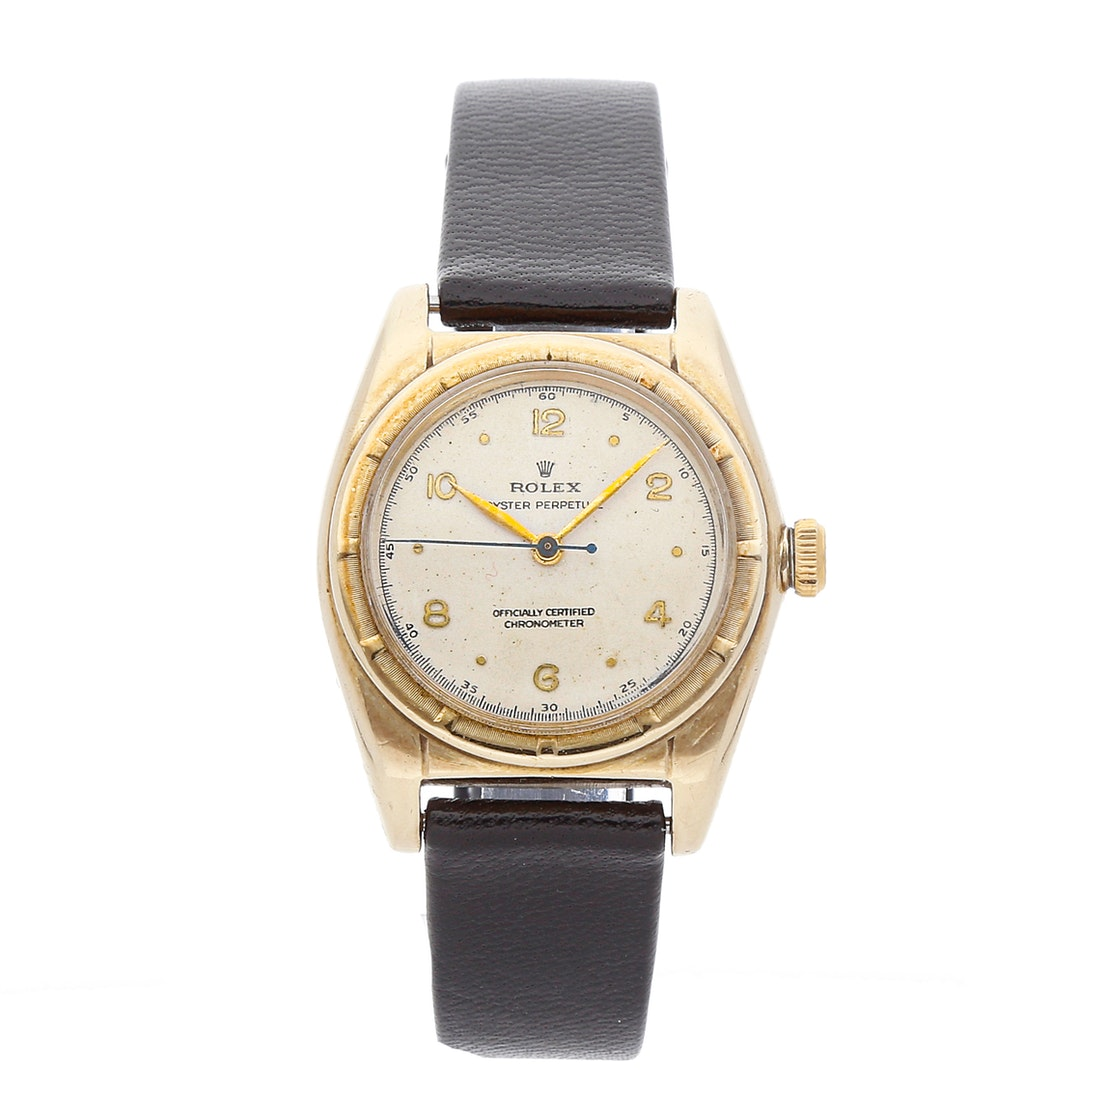 Rolex Oyster Perpetual Bubbleback 5015